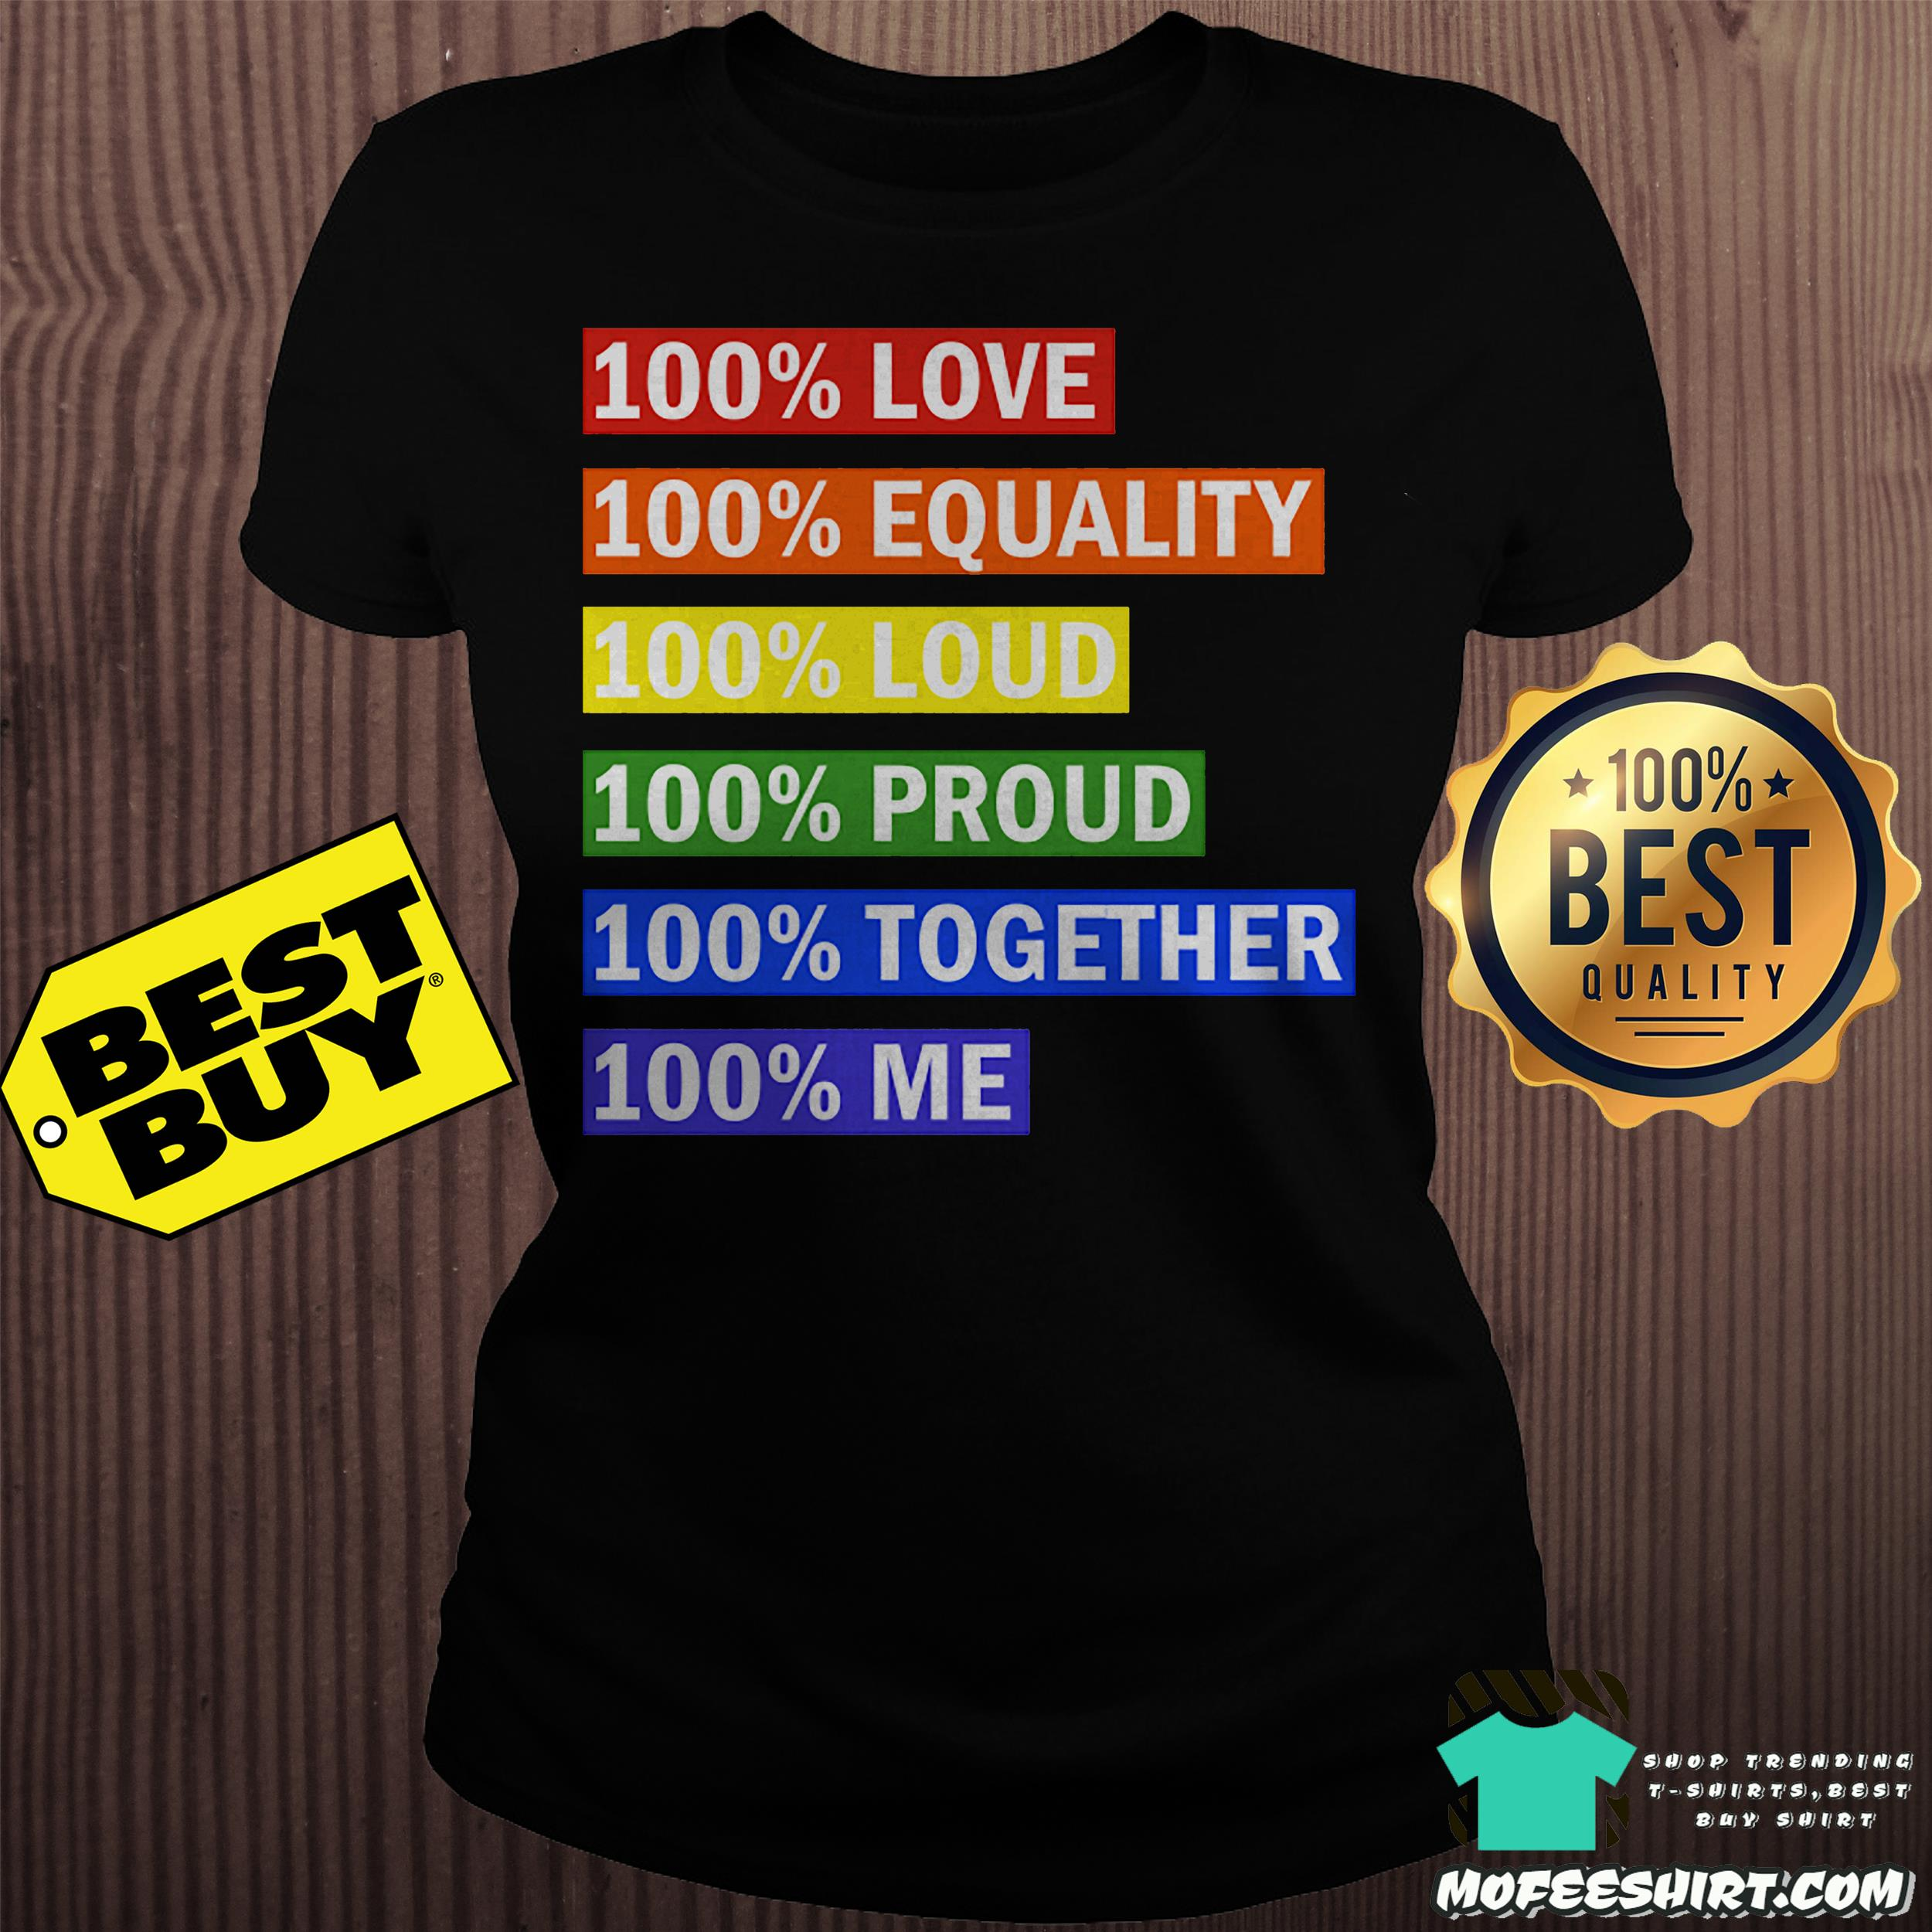 100 love equality loud proud together me ladies tee 1 - 100% love equality loud proud together me shirt